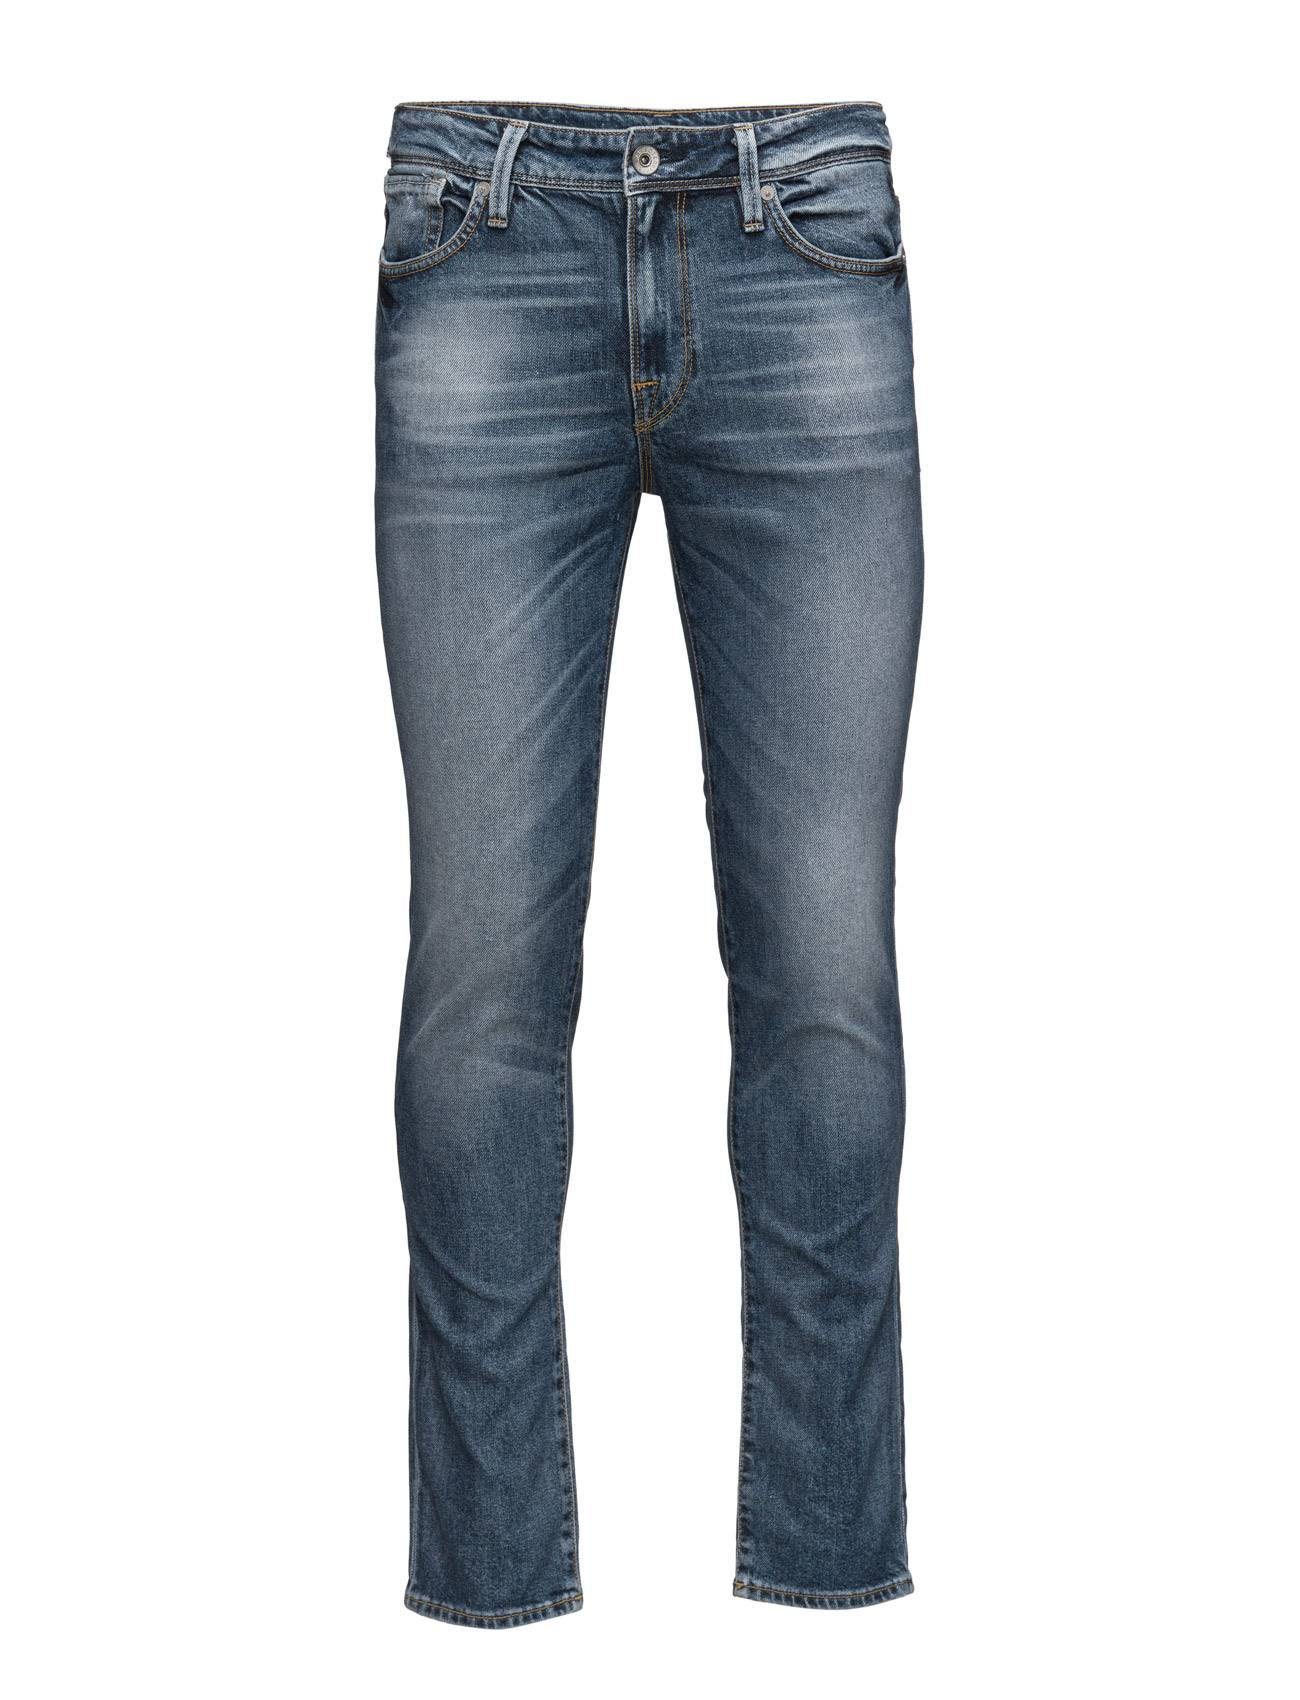 Selected Homme Shntwomario 1388 Mid.Blue St Jeans Noos